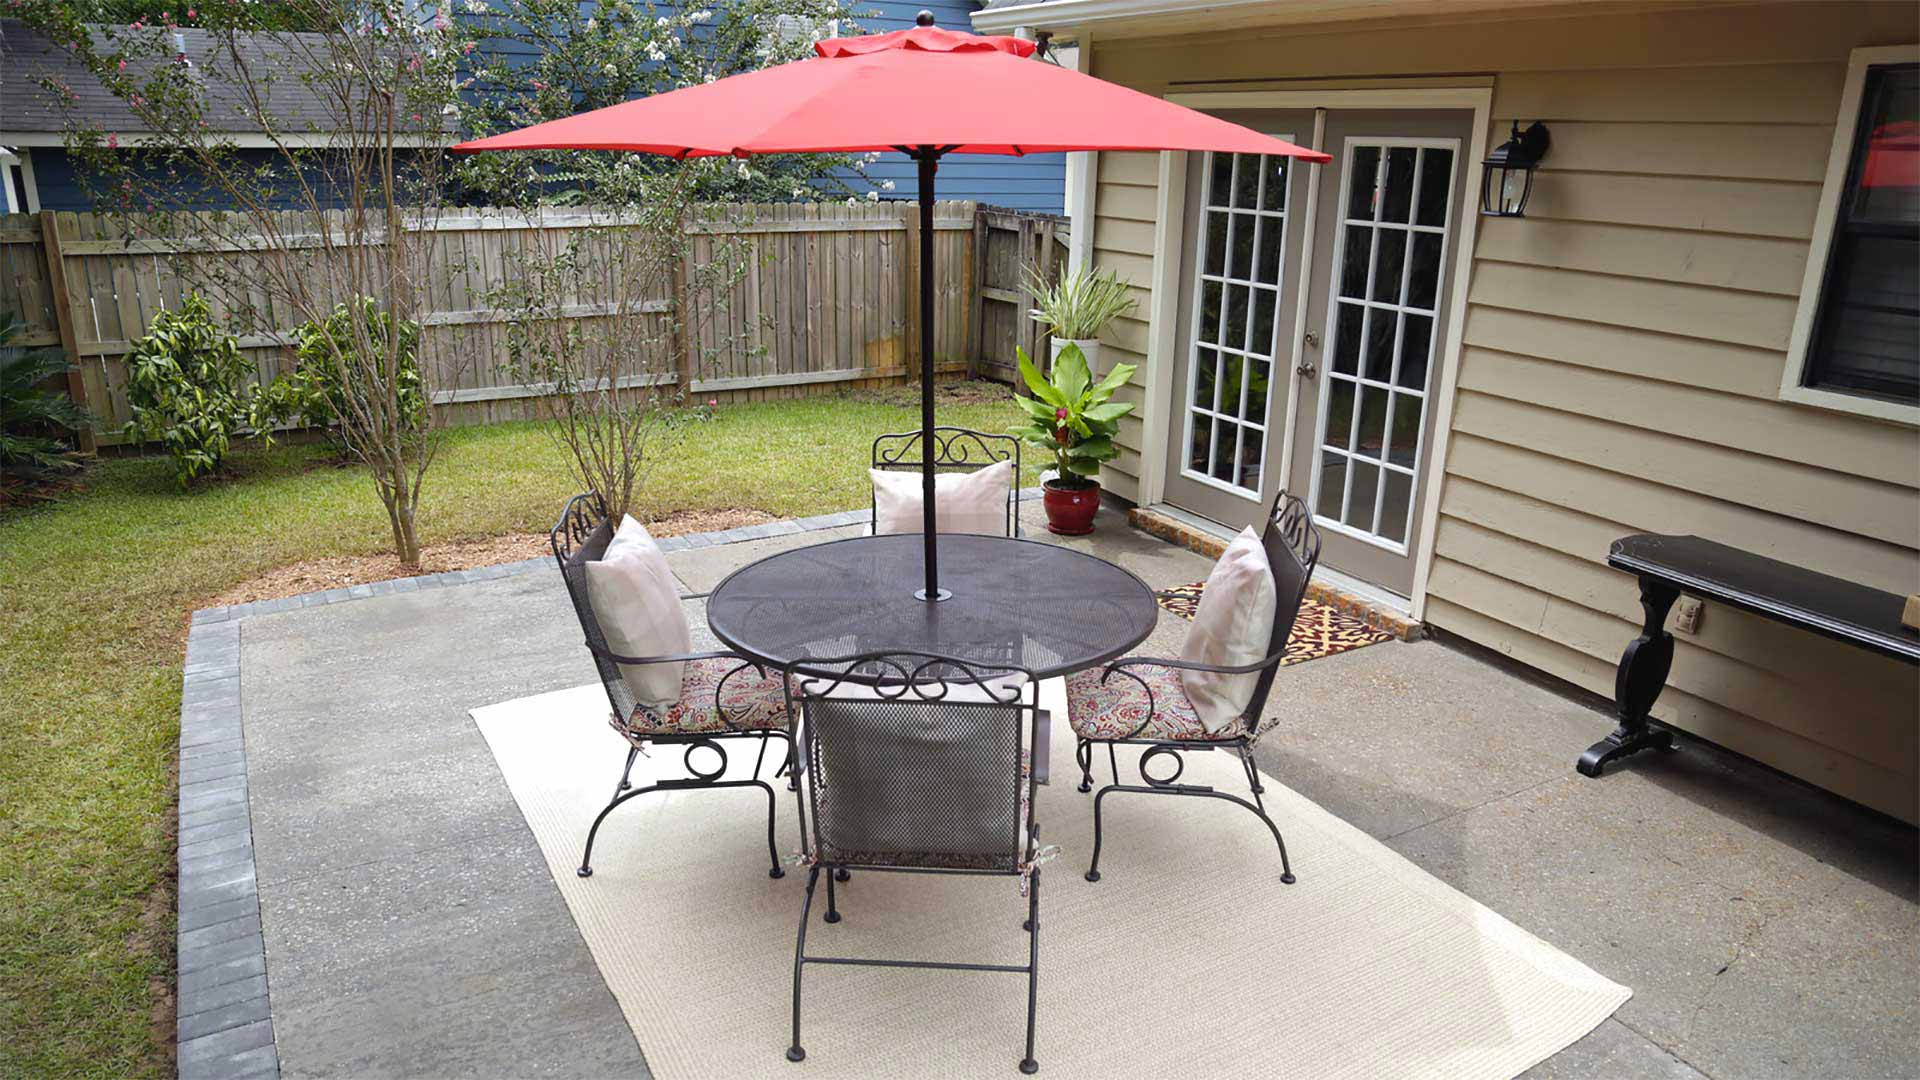 Outdoor aluminum dining set with umbrella